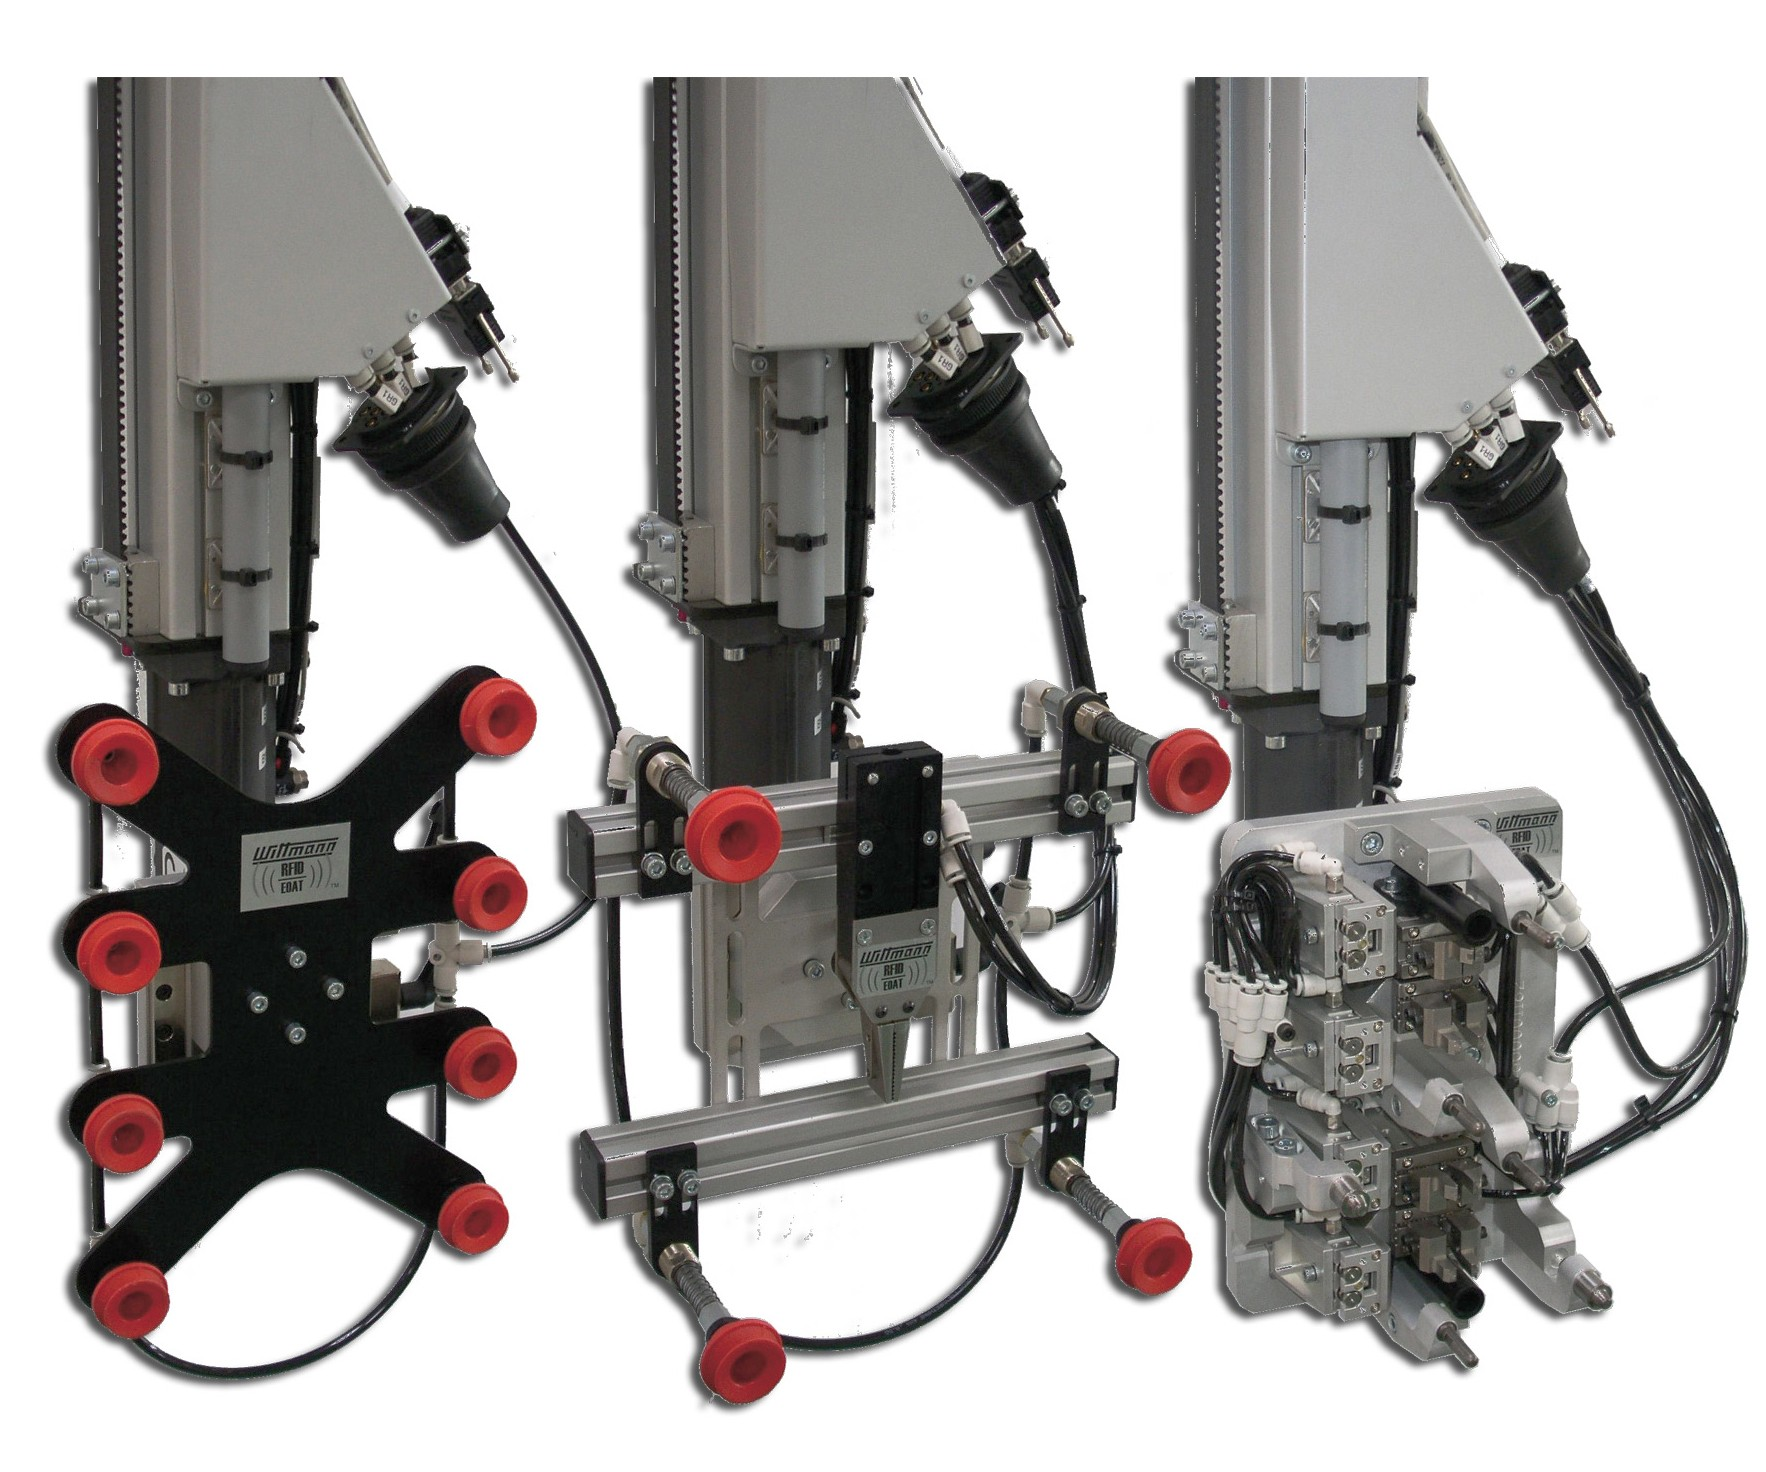 Wittmann Battenfeld robot end-of-arm tooling uses RFID chips for identification